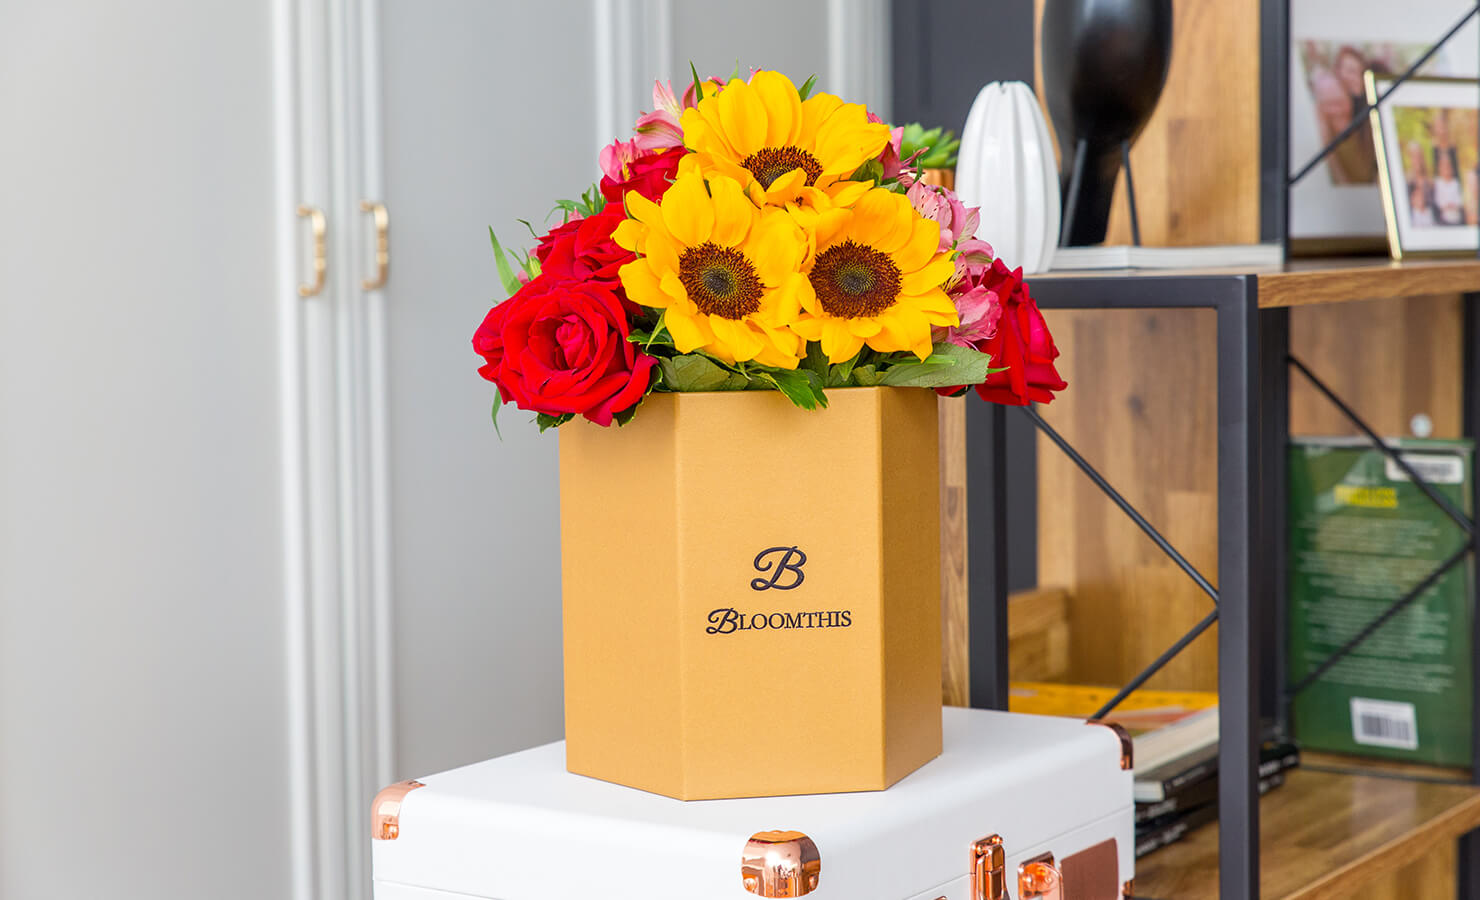 bloomthis-products-darlene